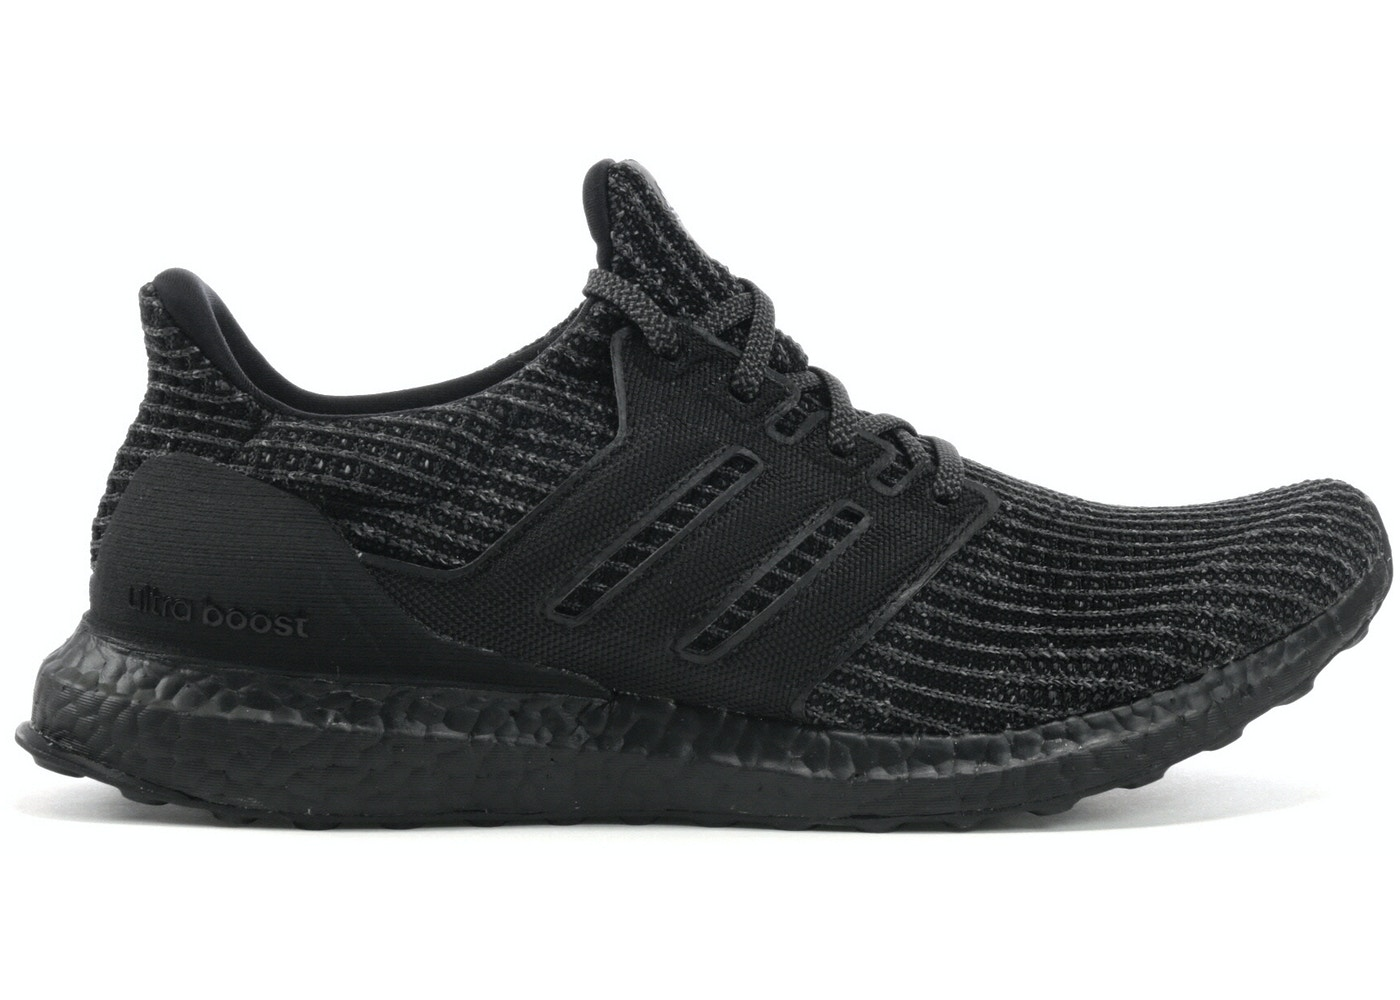 wholesale dealer 5f6a6 94388 Buy adidas Ultra Boost Shoes & Deadstock Sneakers